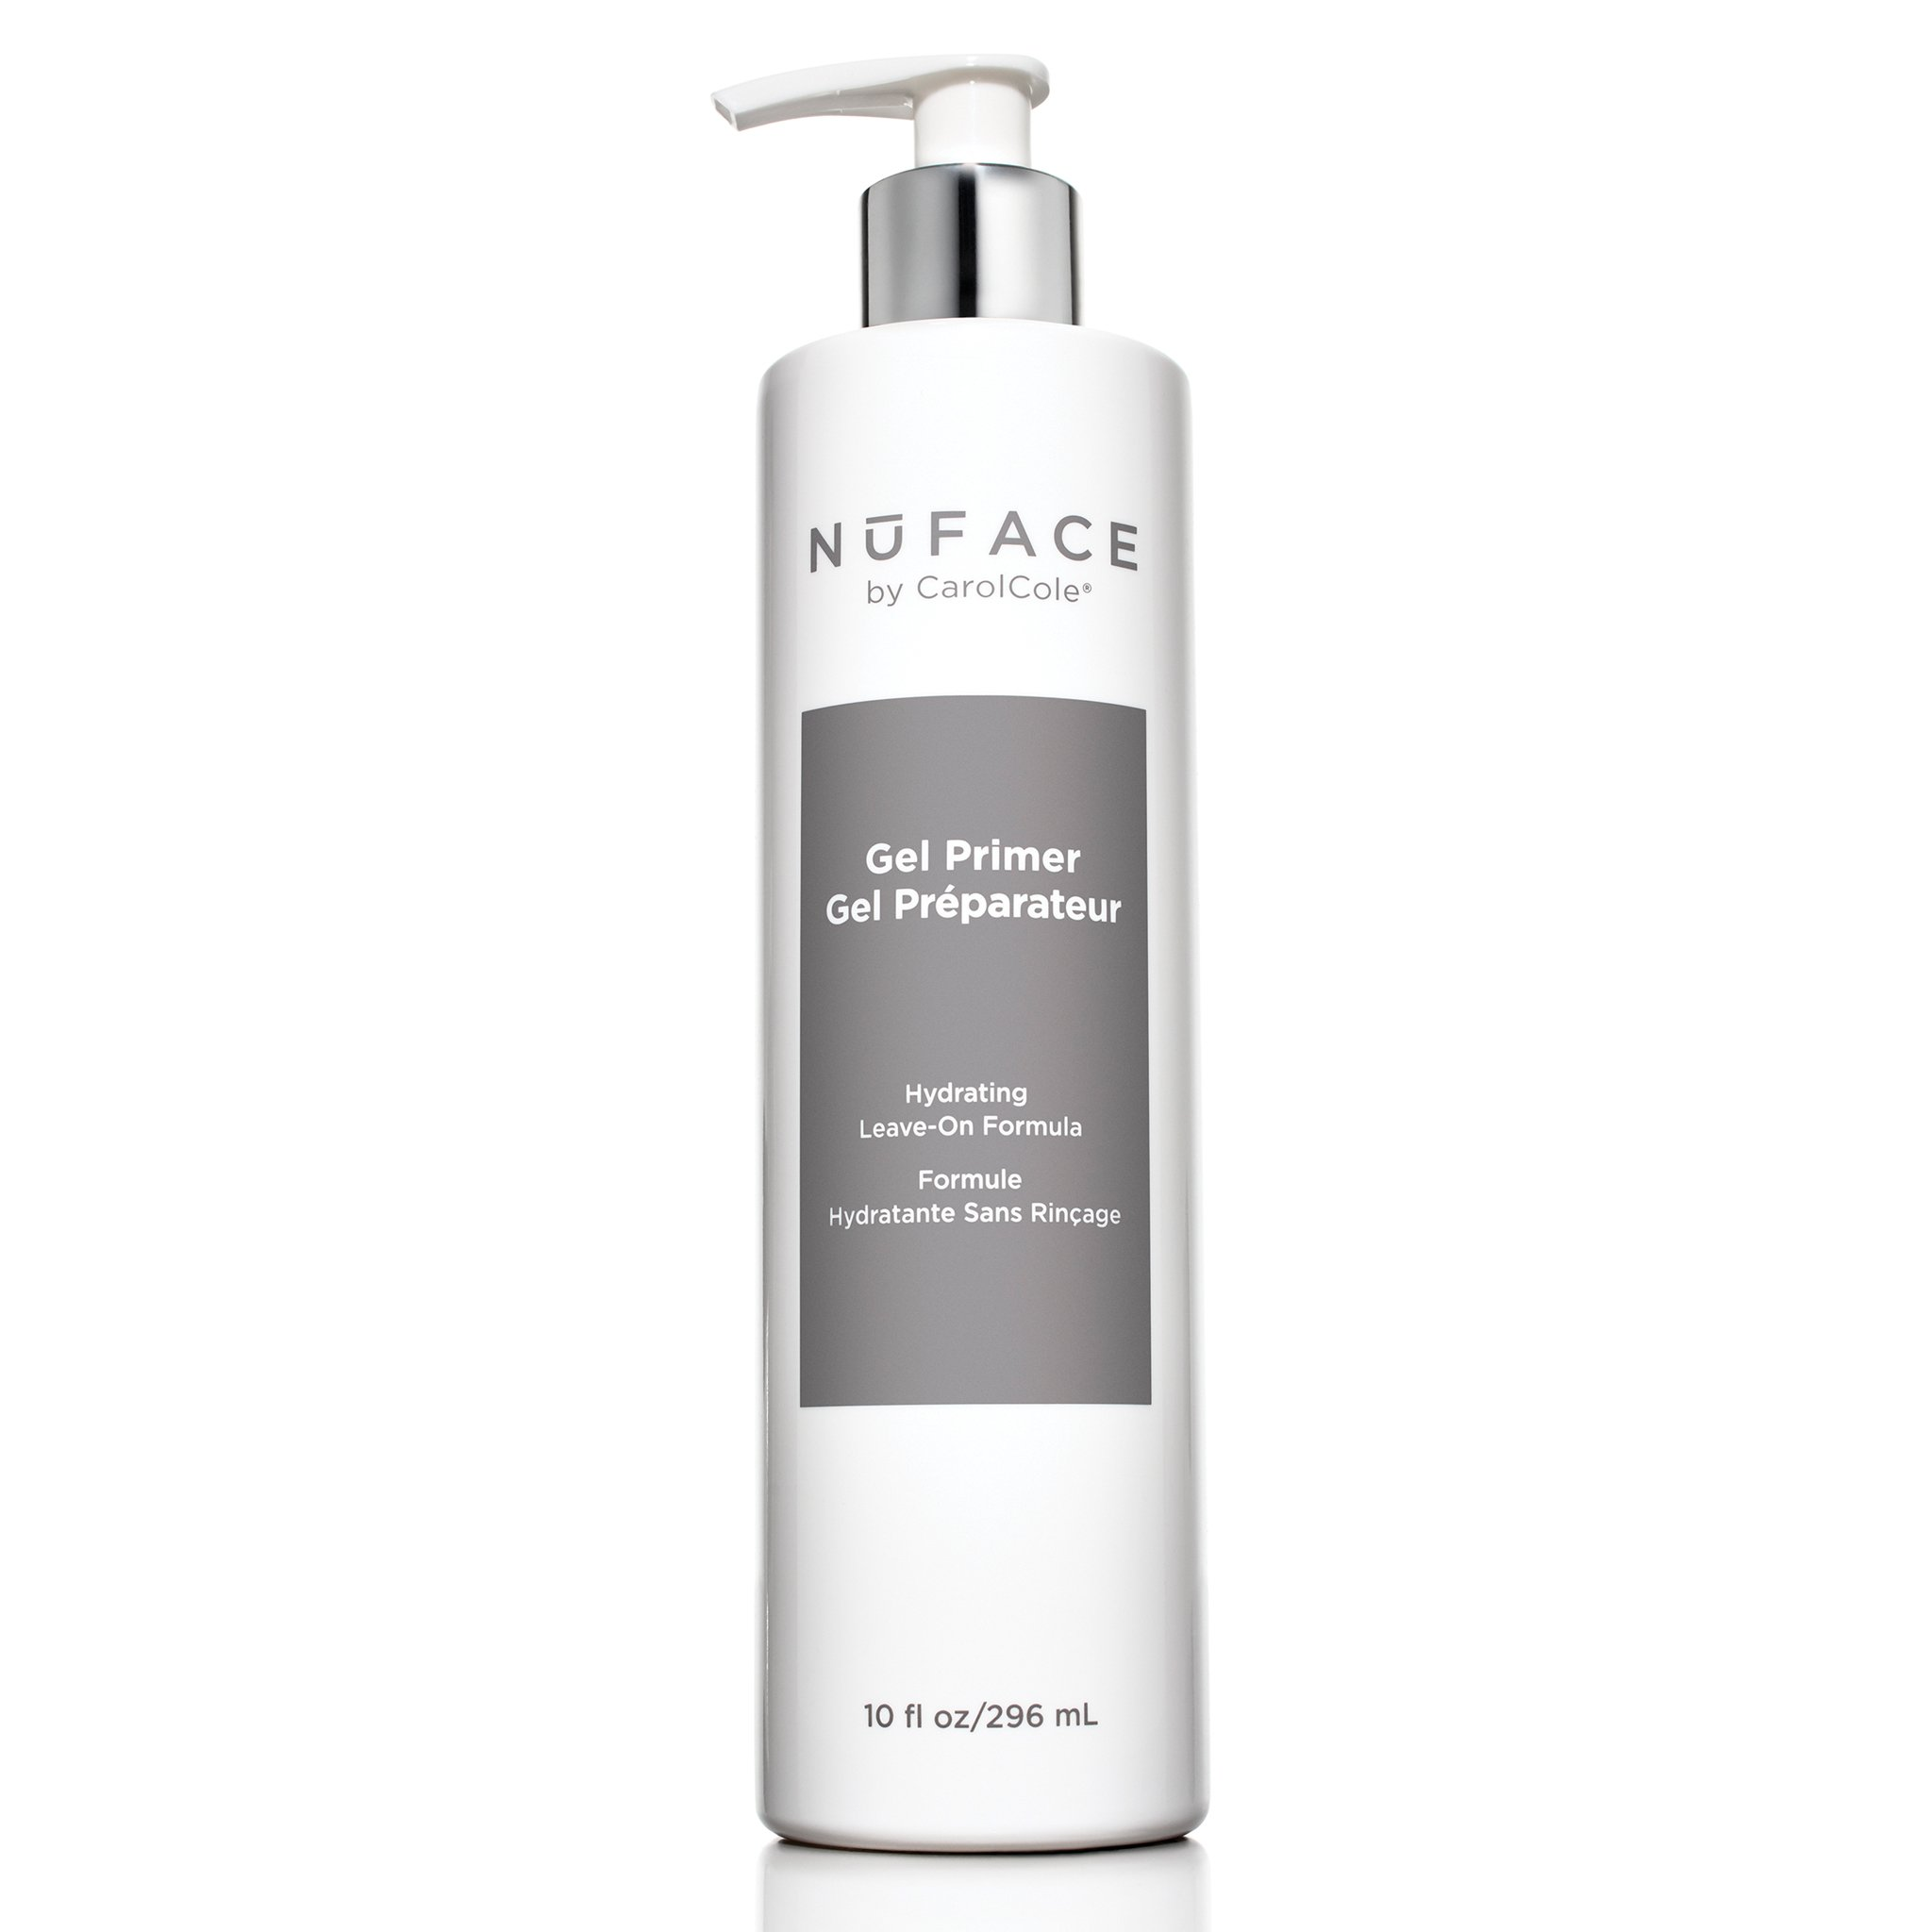 NuFACE Hydrating Leave-On Gel Primer | Use with NuFACE Device | Smooths Skin, Reduce Wrinkles | Lightweight Application | 10 Fl Oz by NuFACE